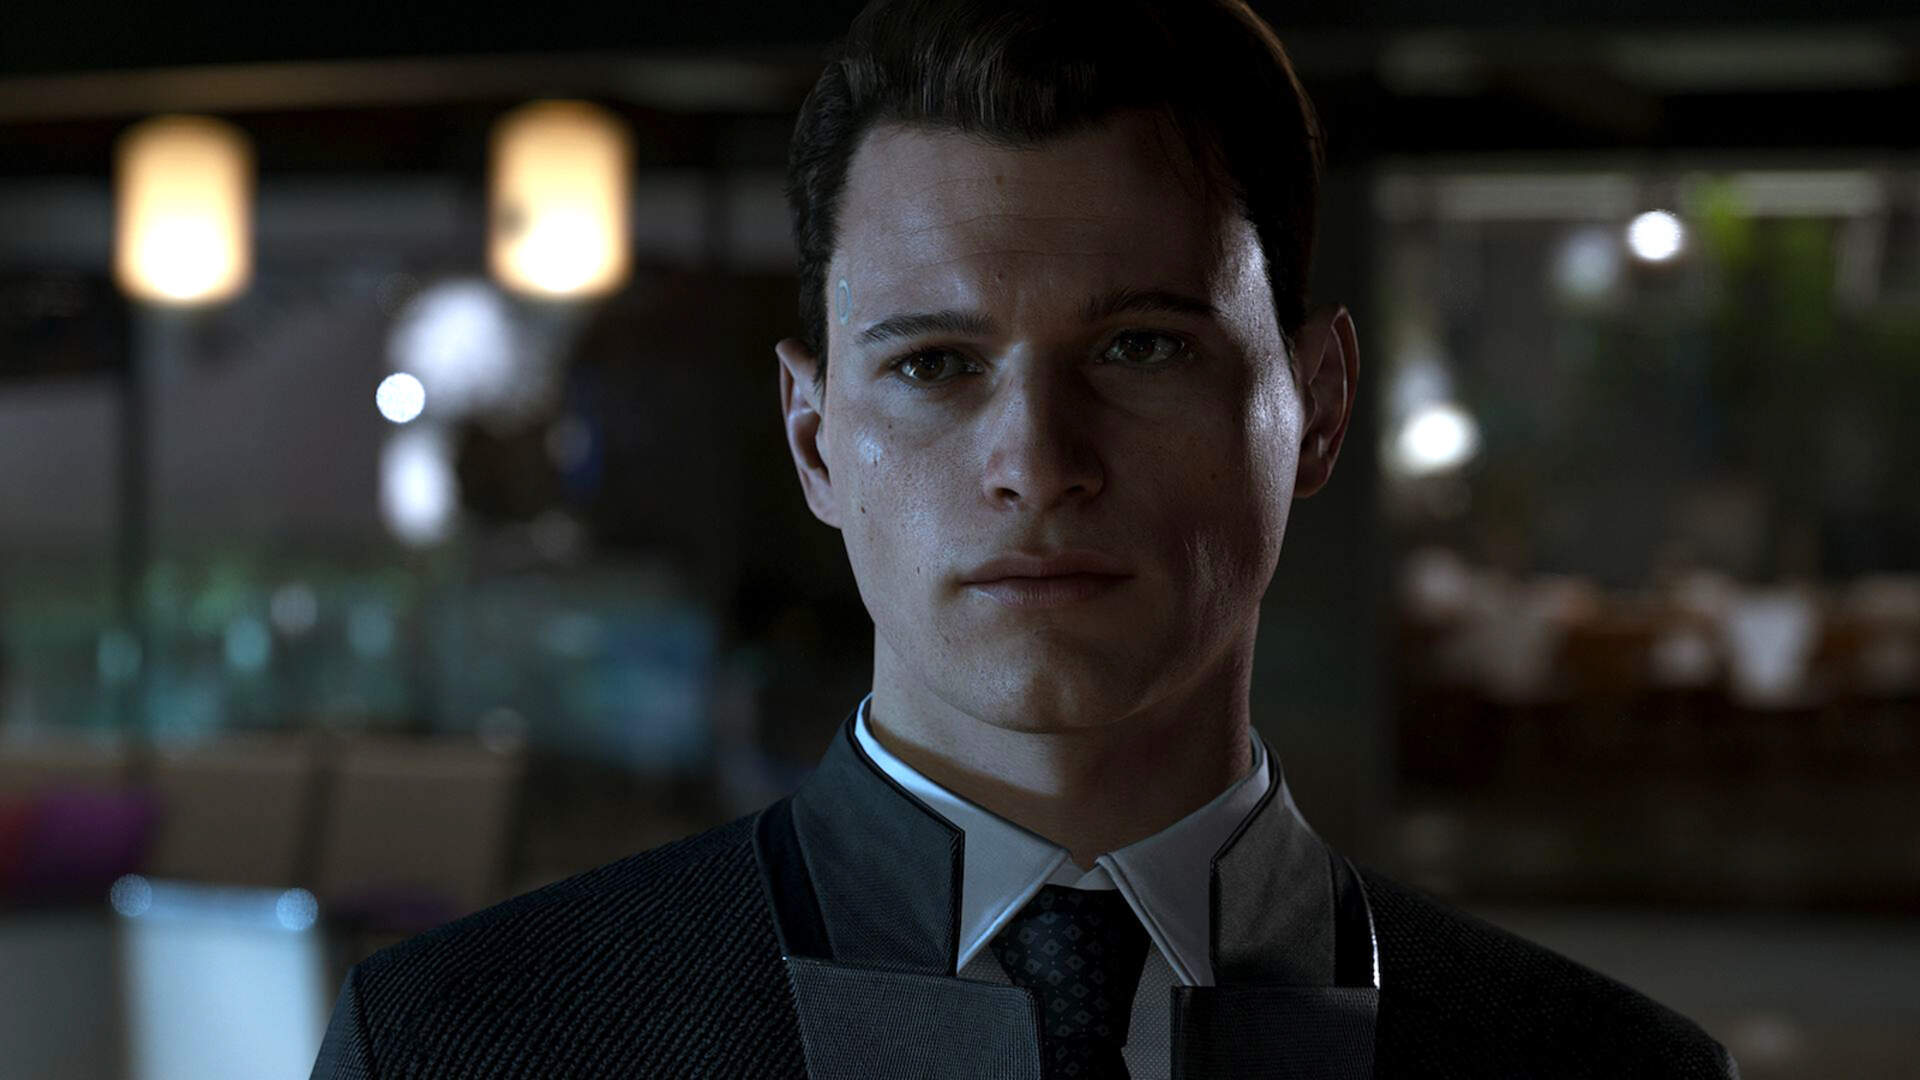 Sony Replaces PES With Detroit: Become Human In July's PlayStation Plus Lineup